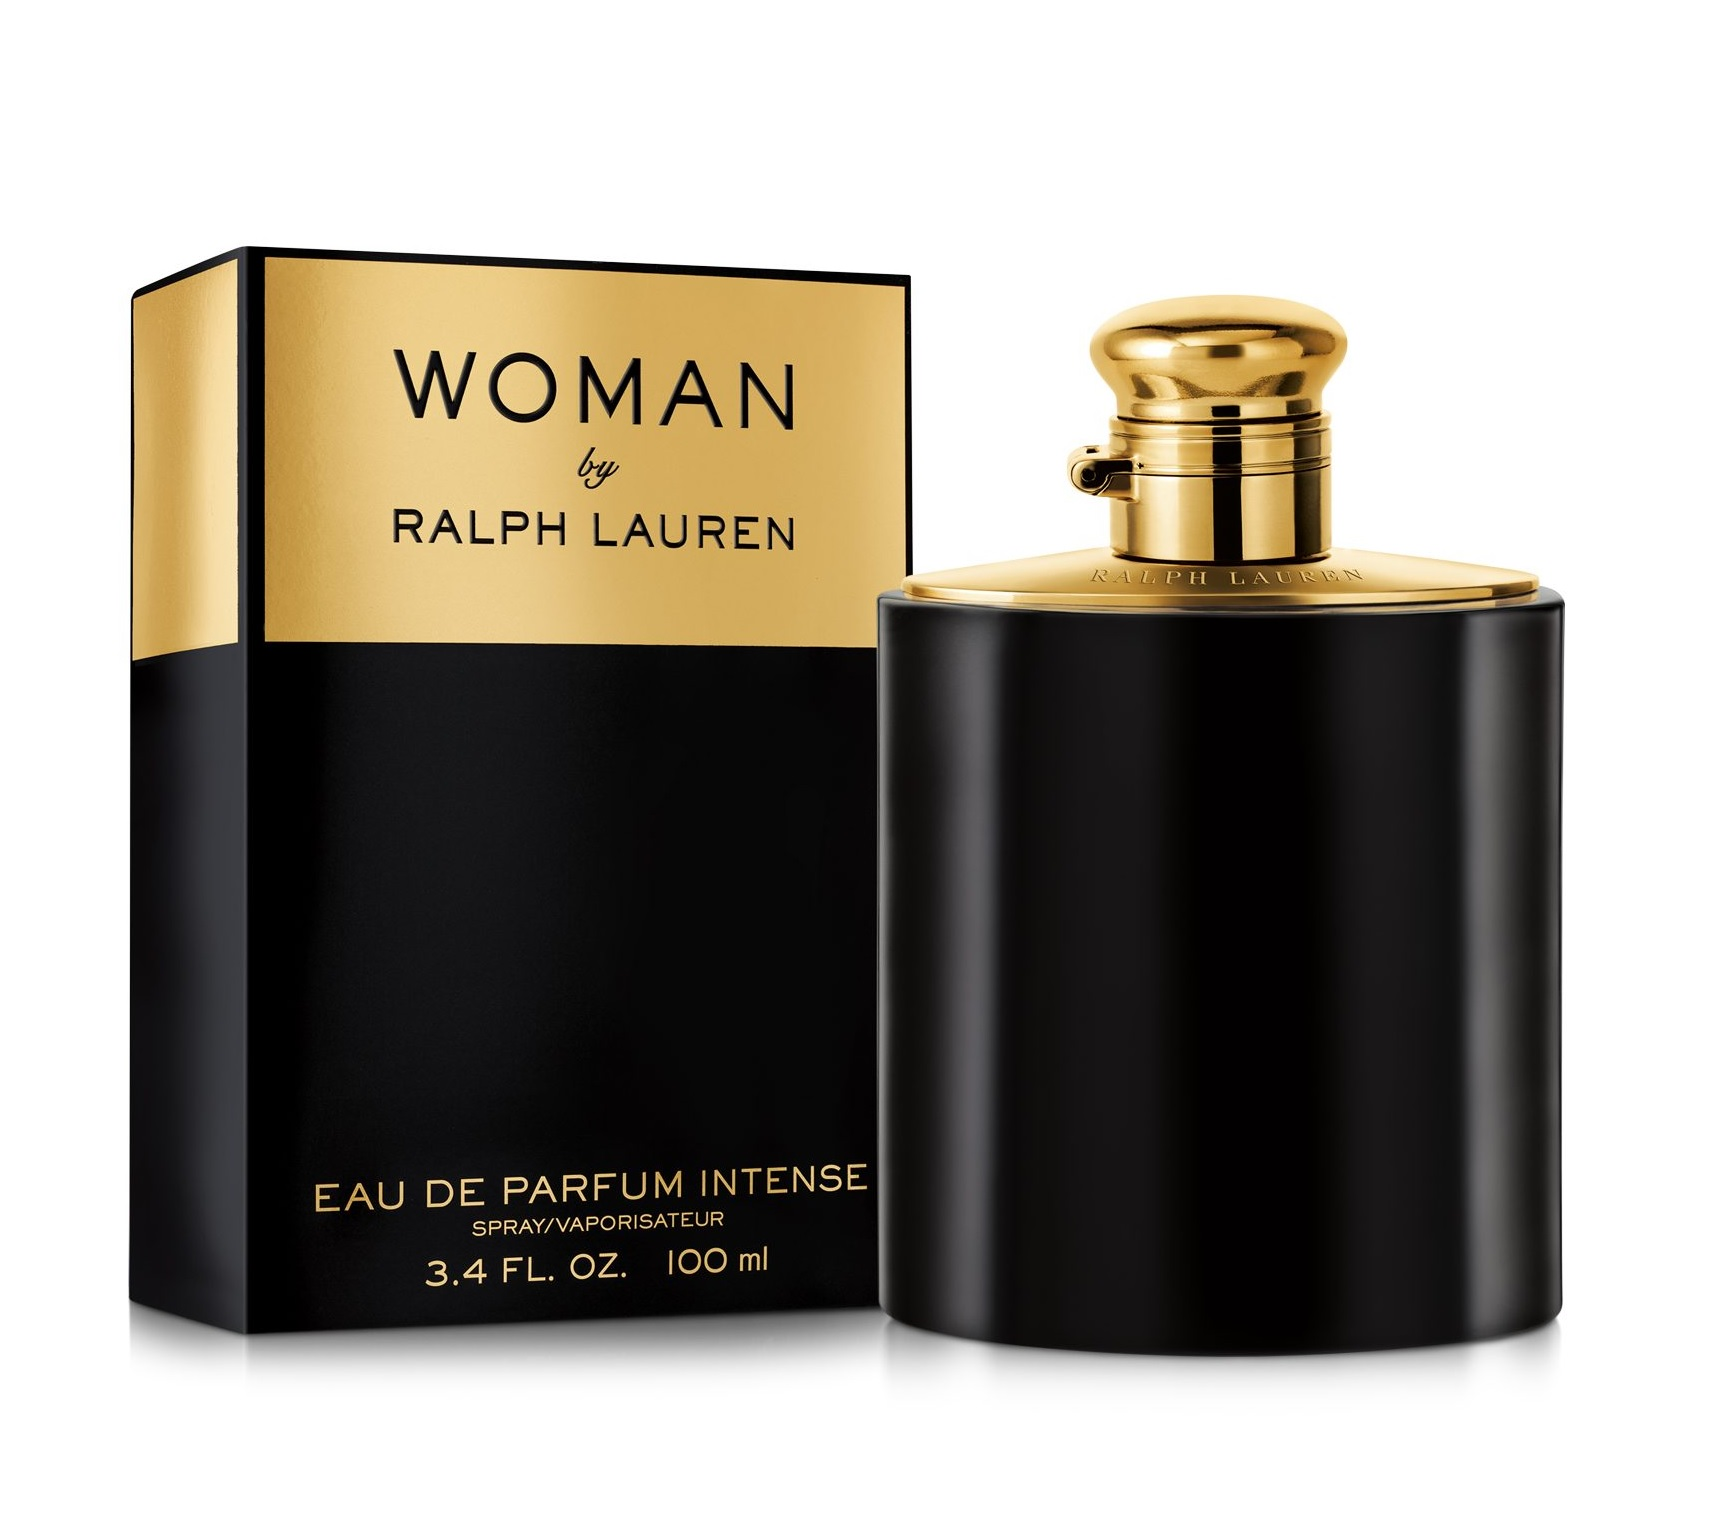 Lauren Para Ralph Intense Woman By Mujeres On8PwkN0X